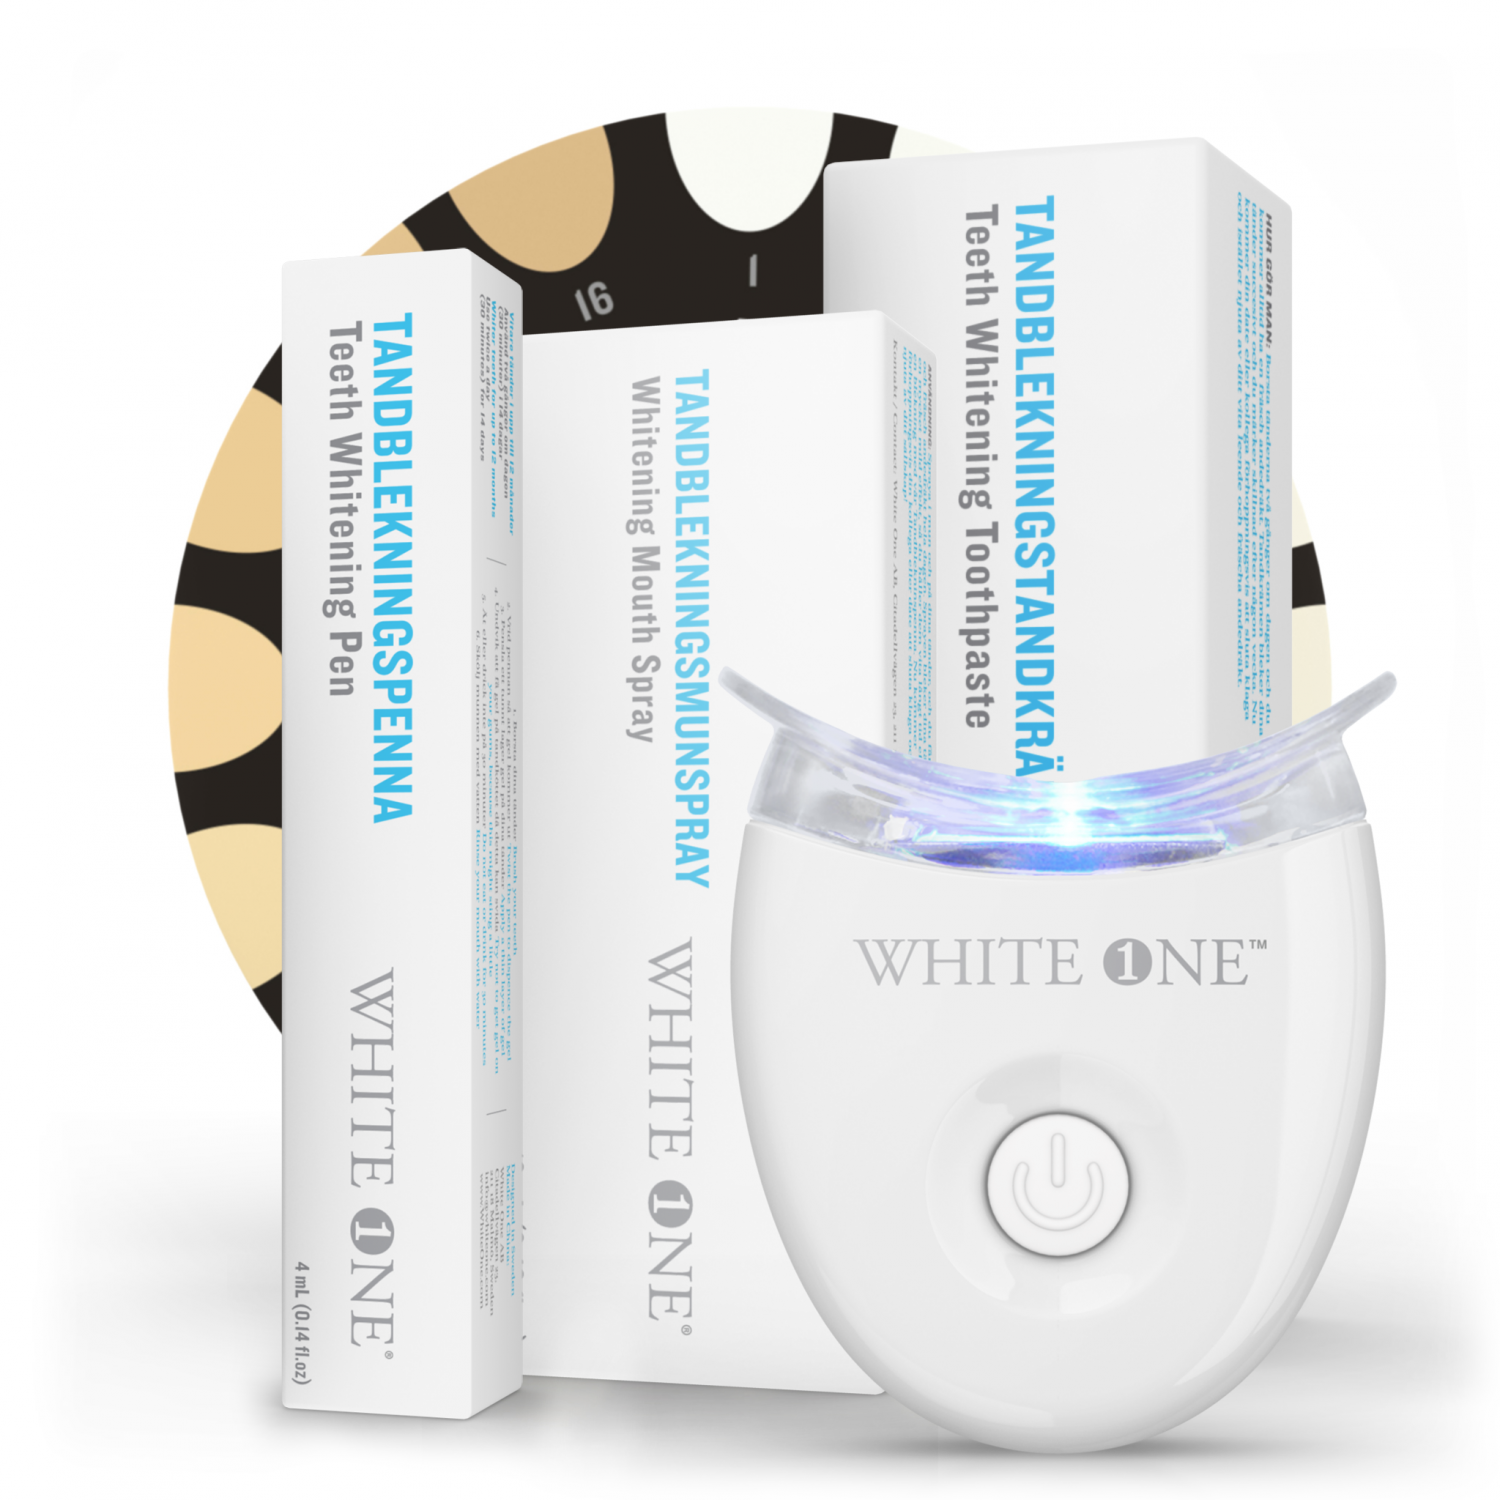 teeth whitening kit online white smile in 7-14 days